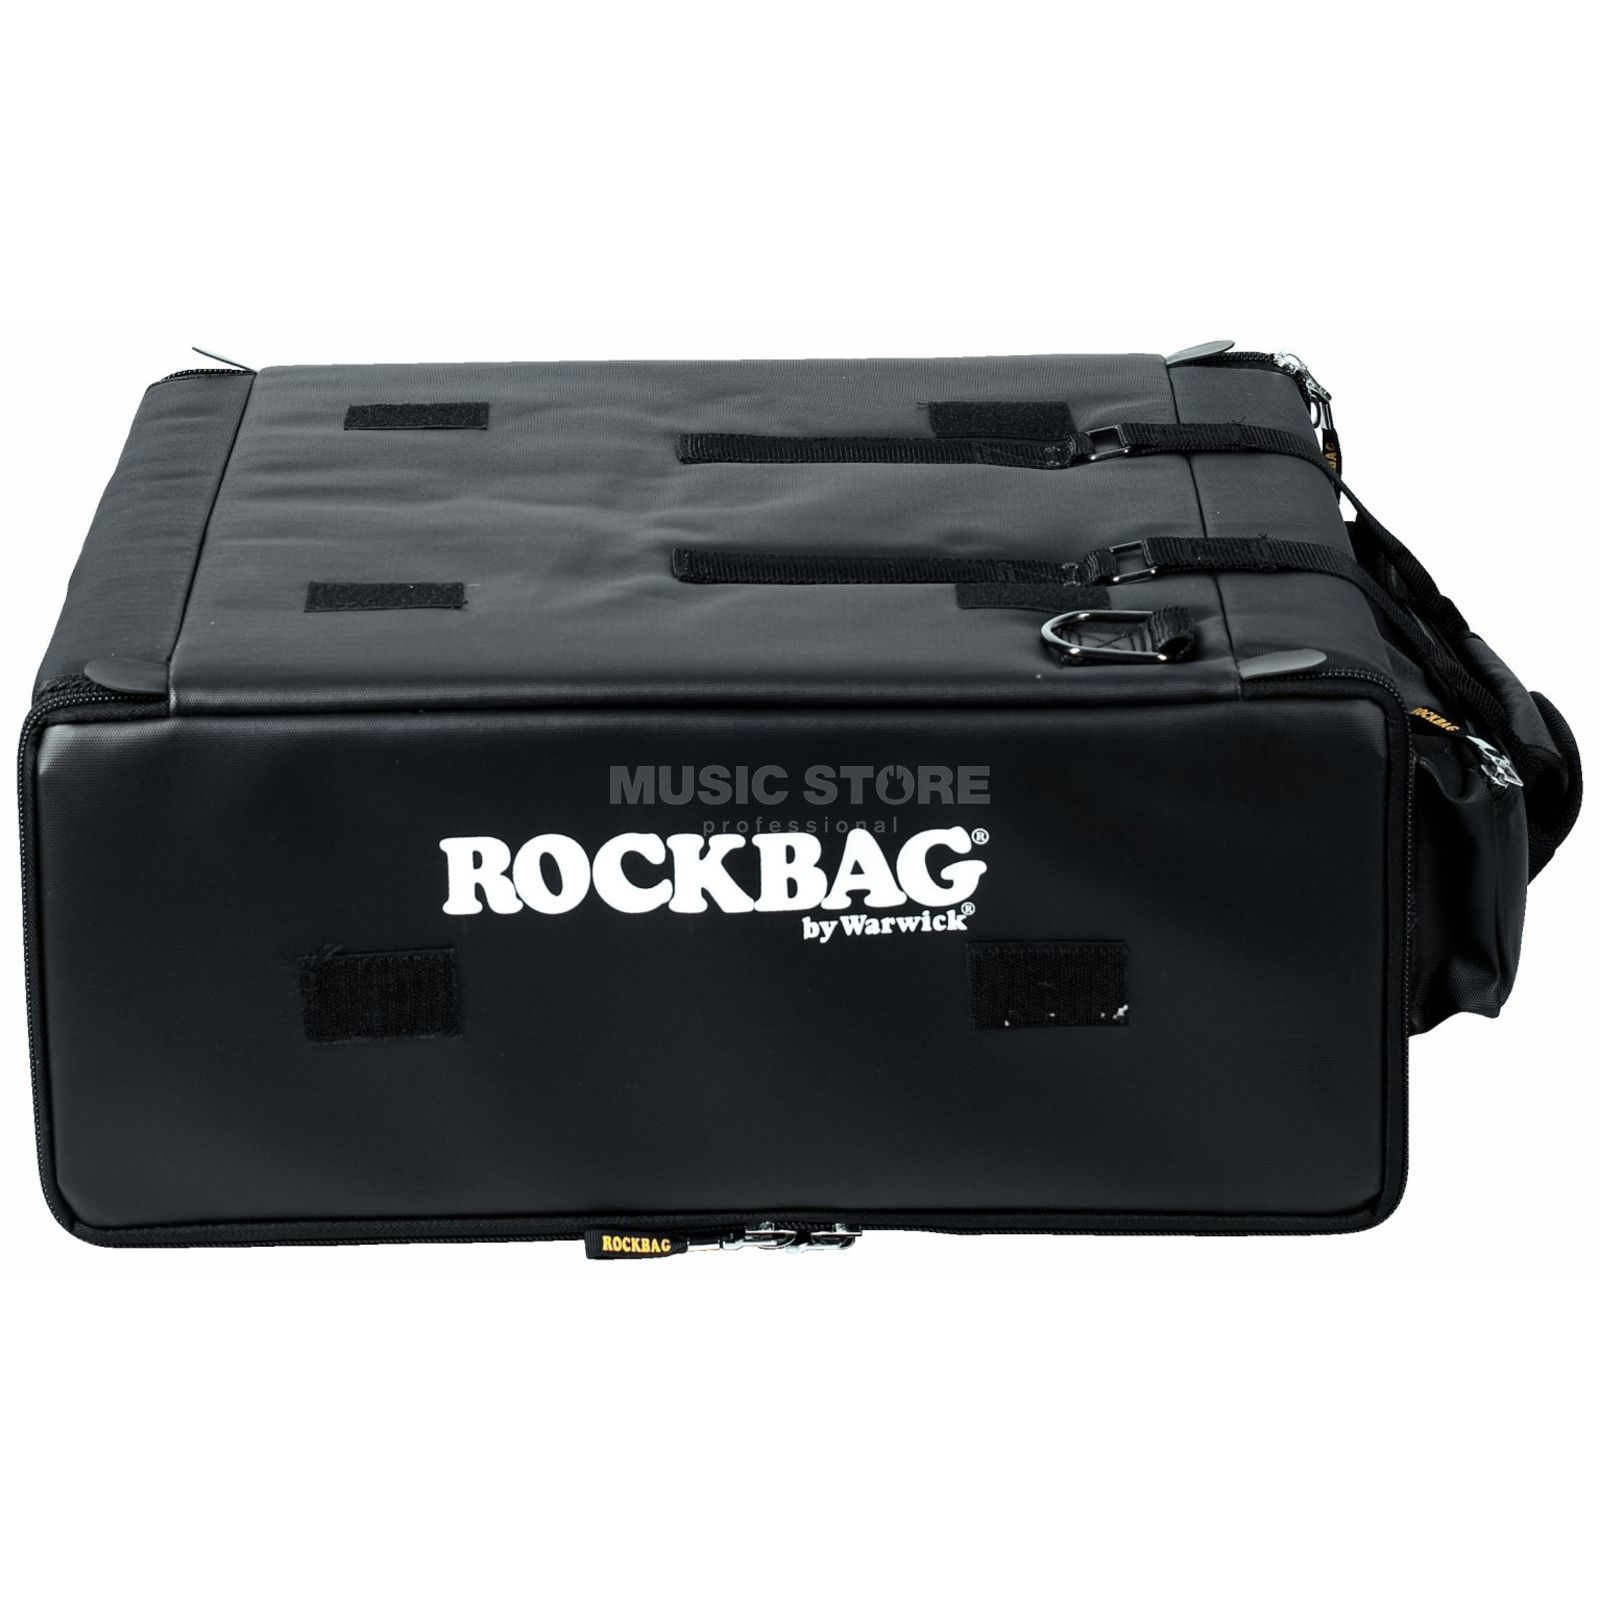 "Rockbag RB 24400 B 19"" Rack Bag 4U black Produktbillede"